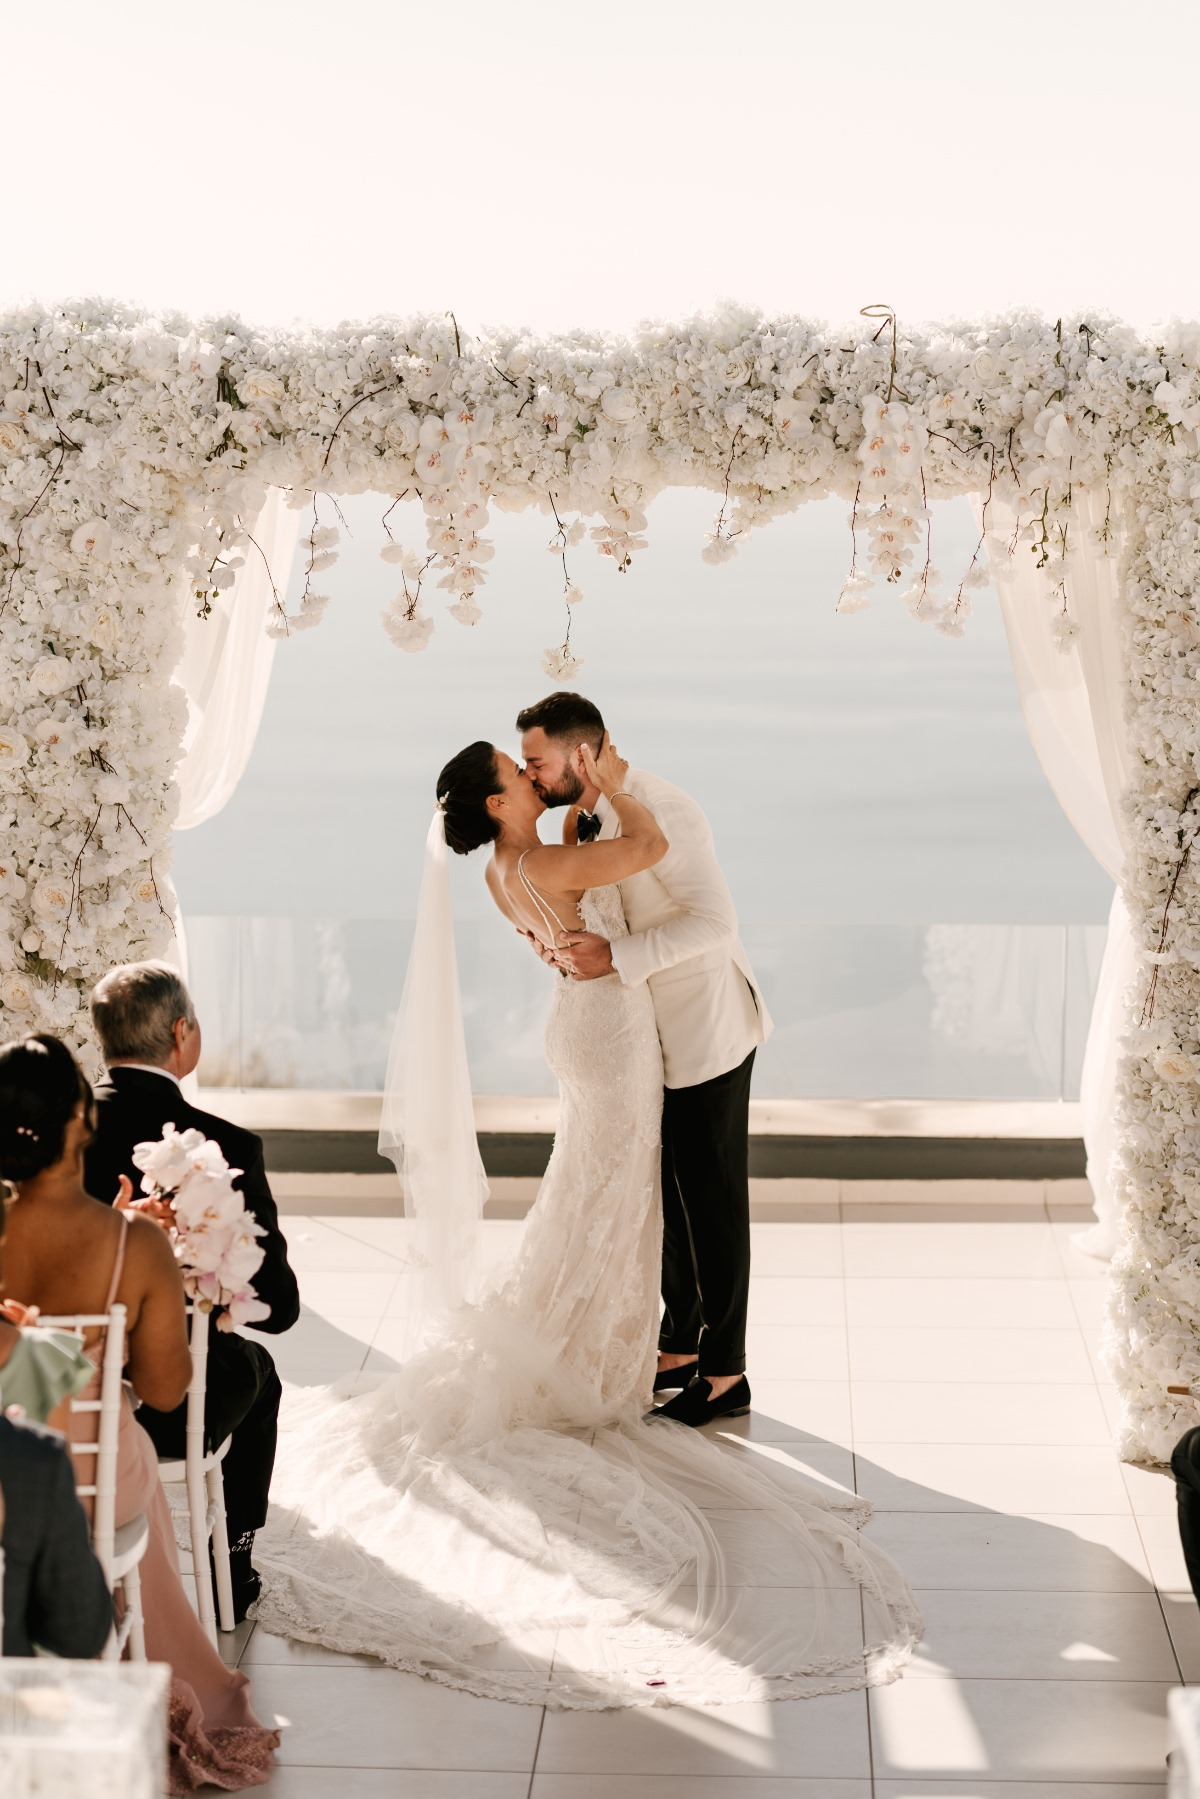 Fairytale Wedding In Santorini Planned During A Global Pandemic